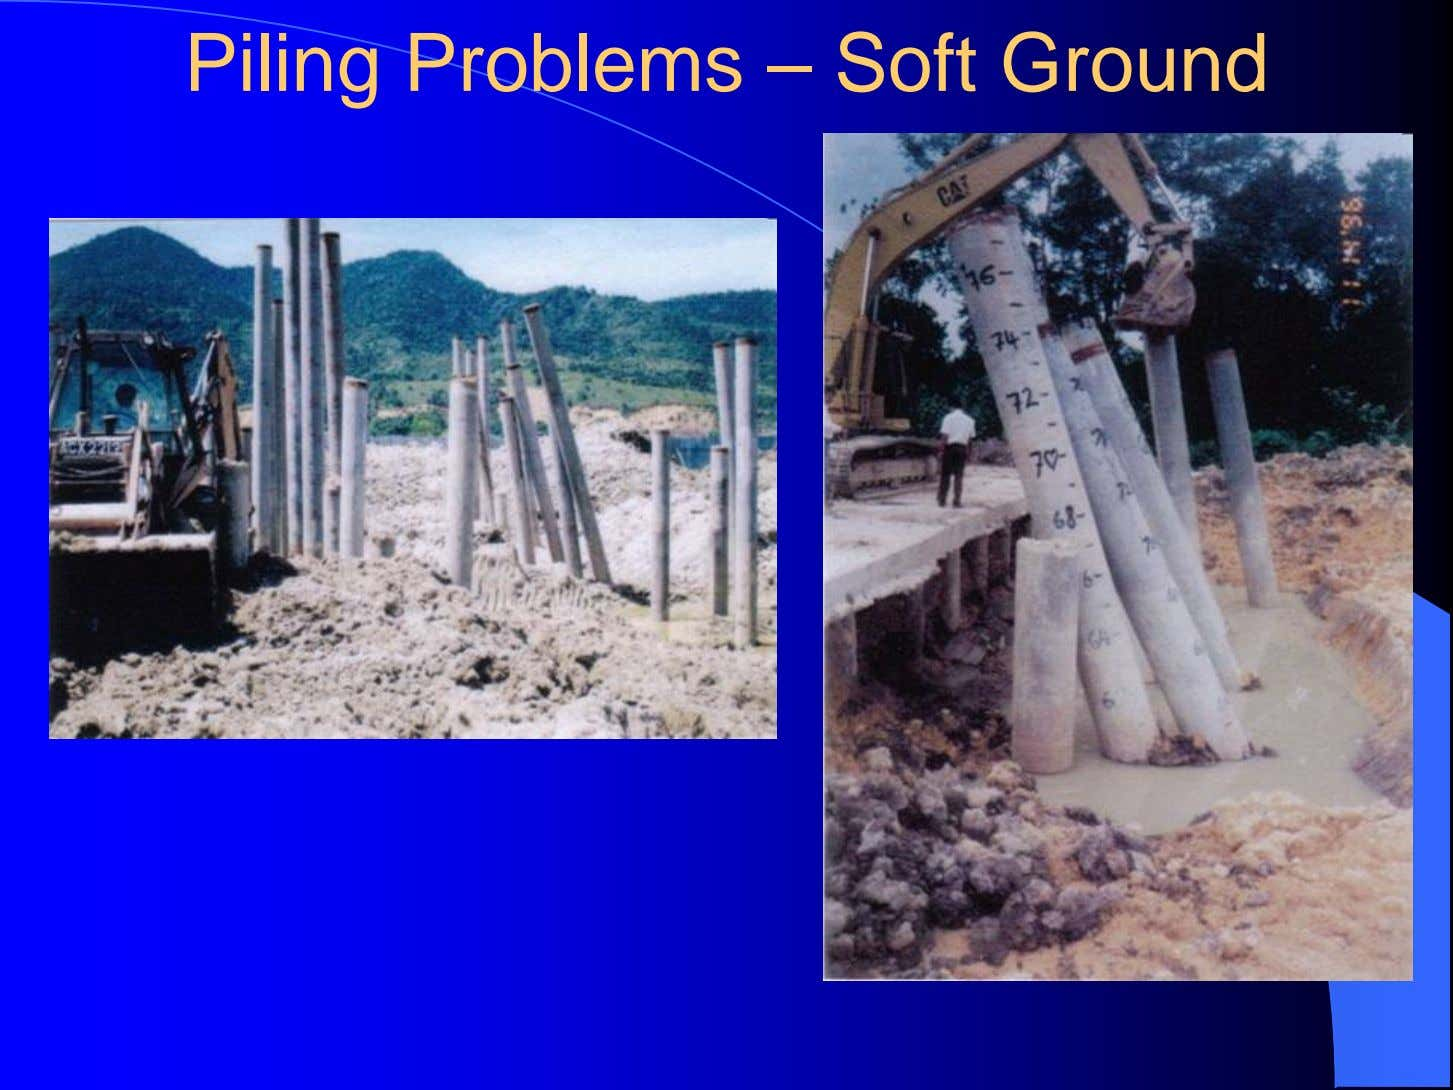 Piling Problems – Soft Ground